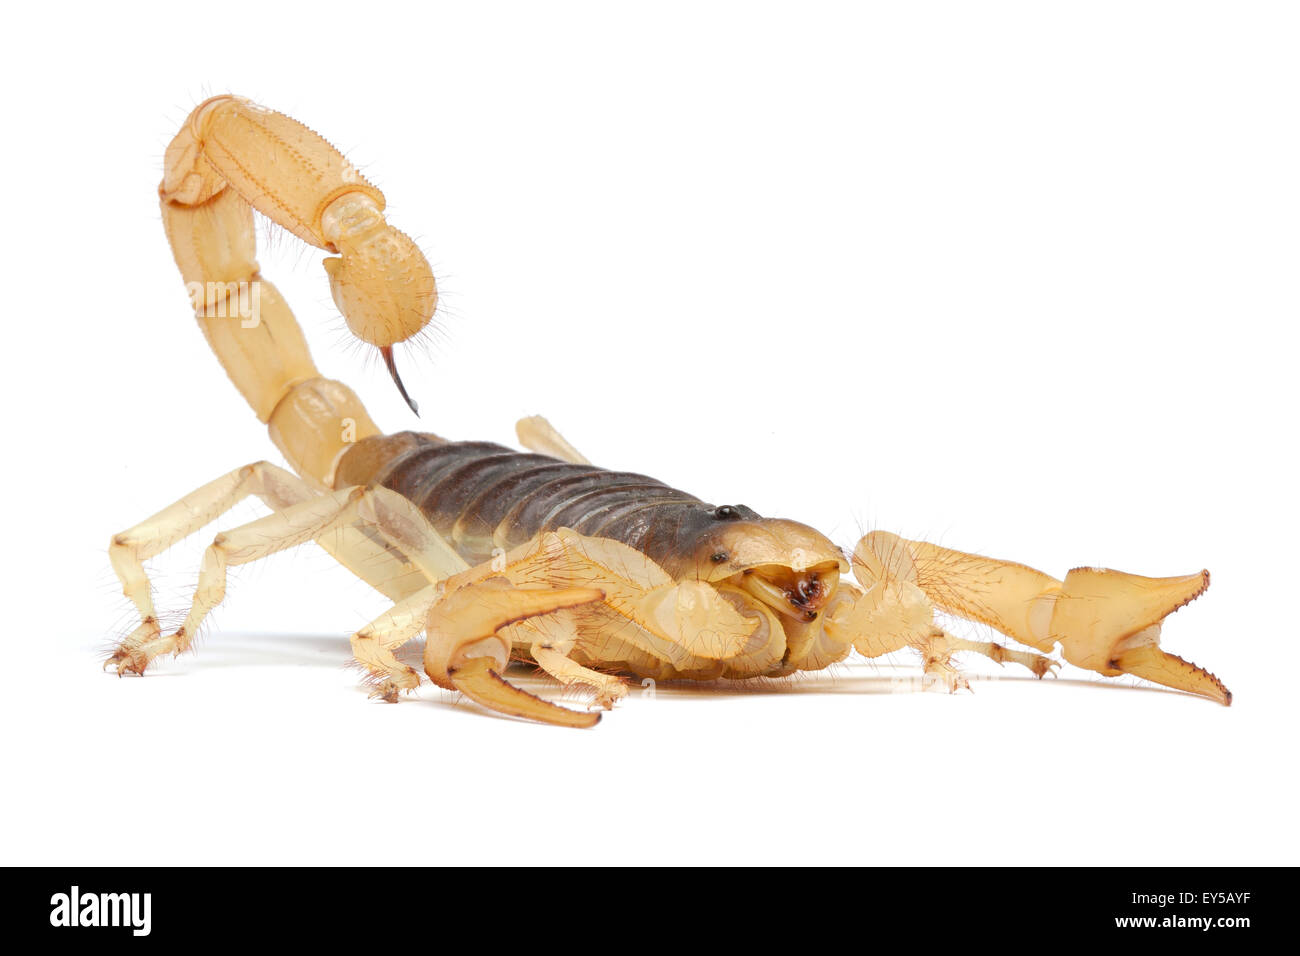 Desert Hairy Scorpion on white background Native to Western U.S. - Stock Image